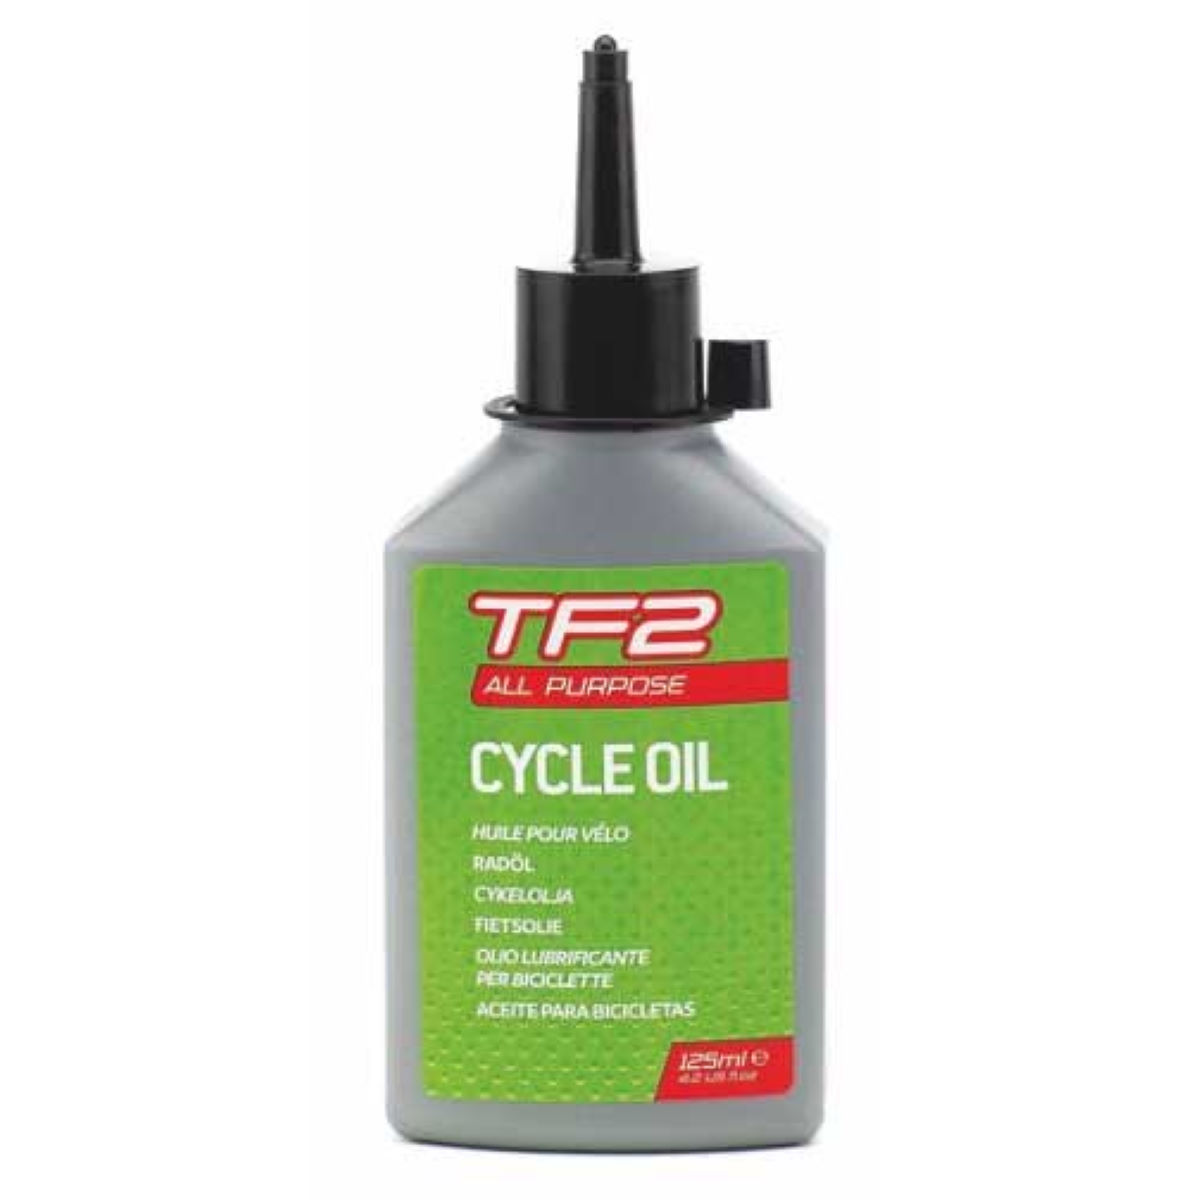 Weldtite Weldtite TF2 Cycle Oil   Lube